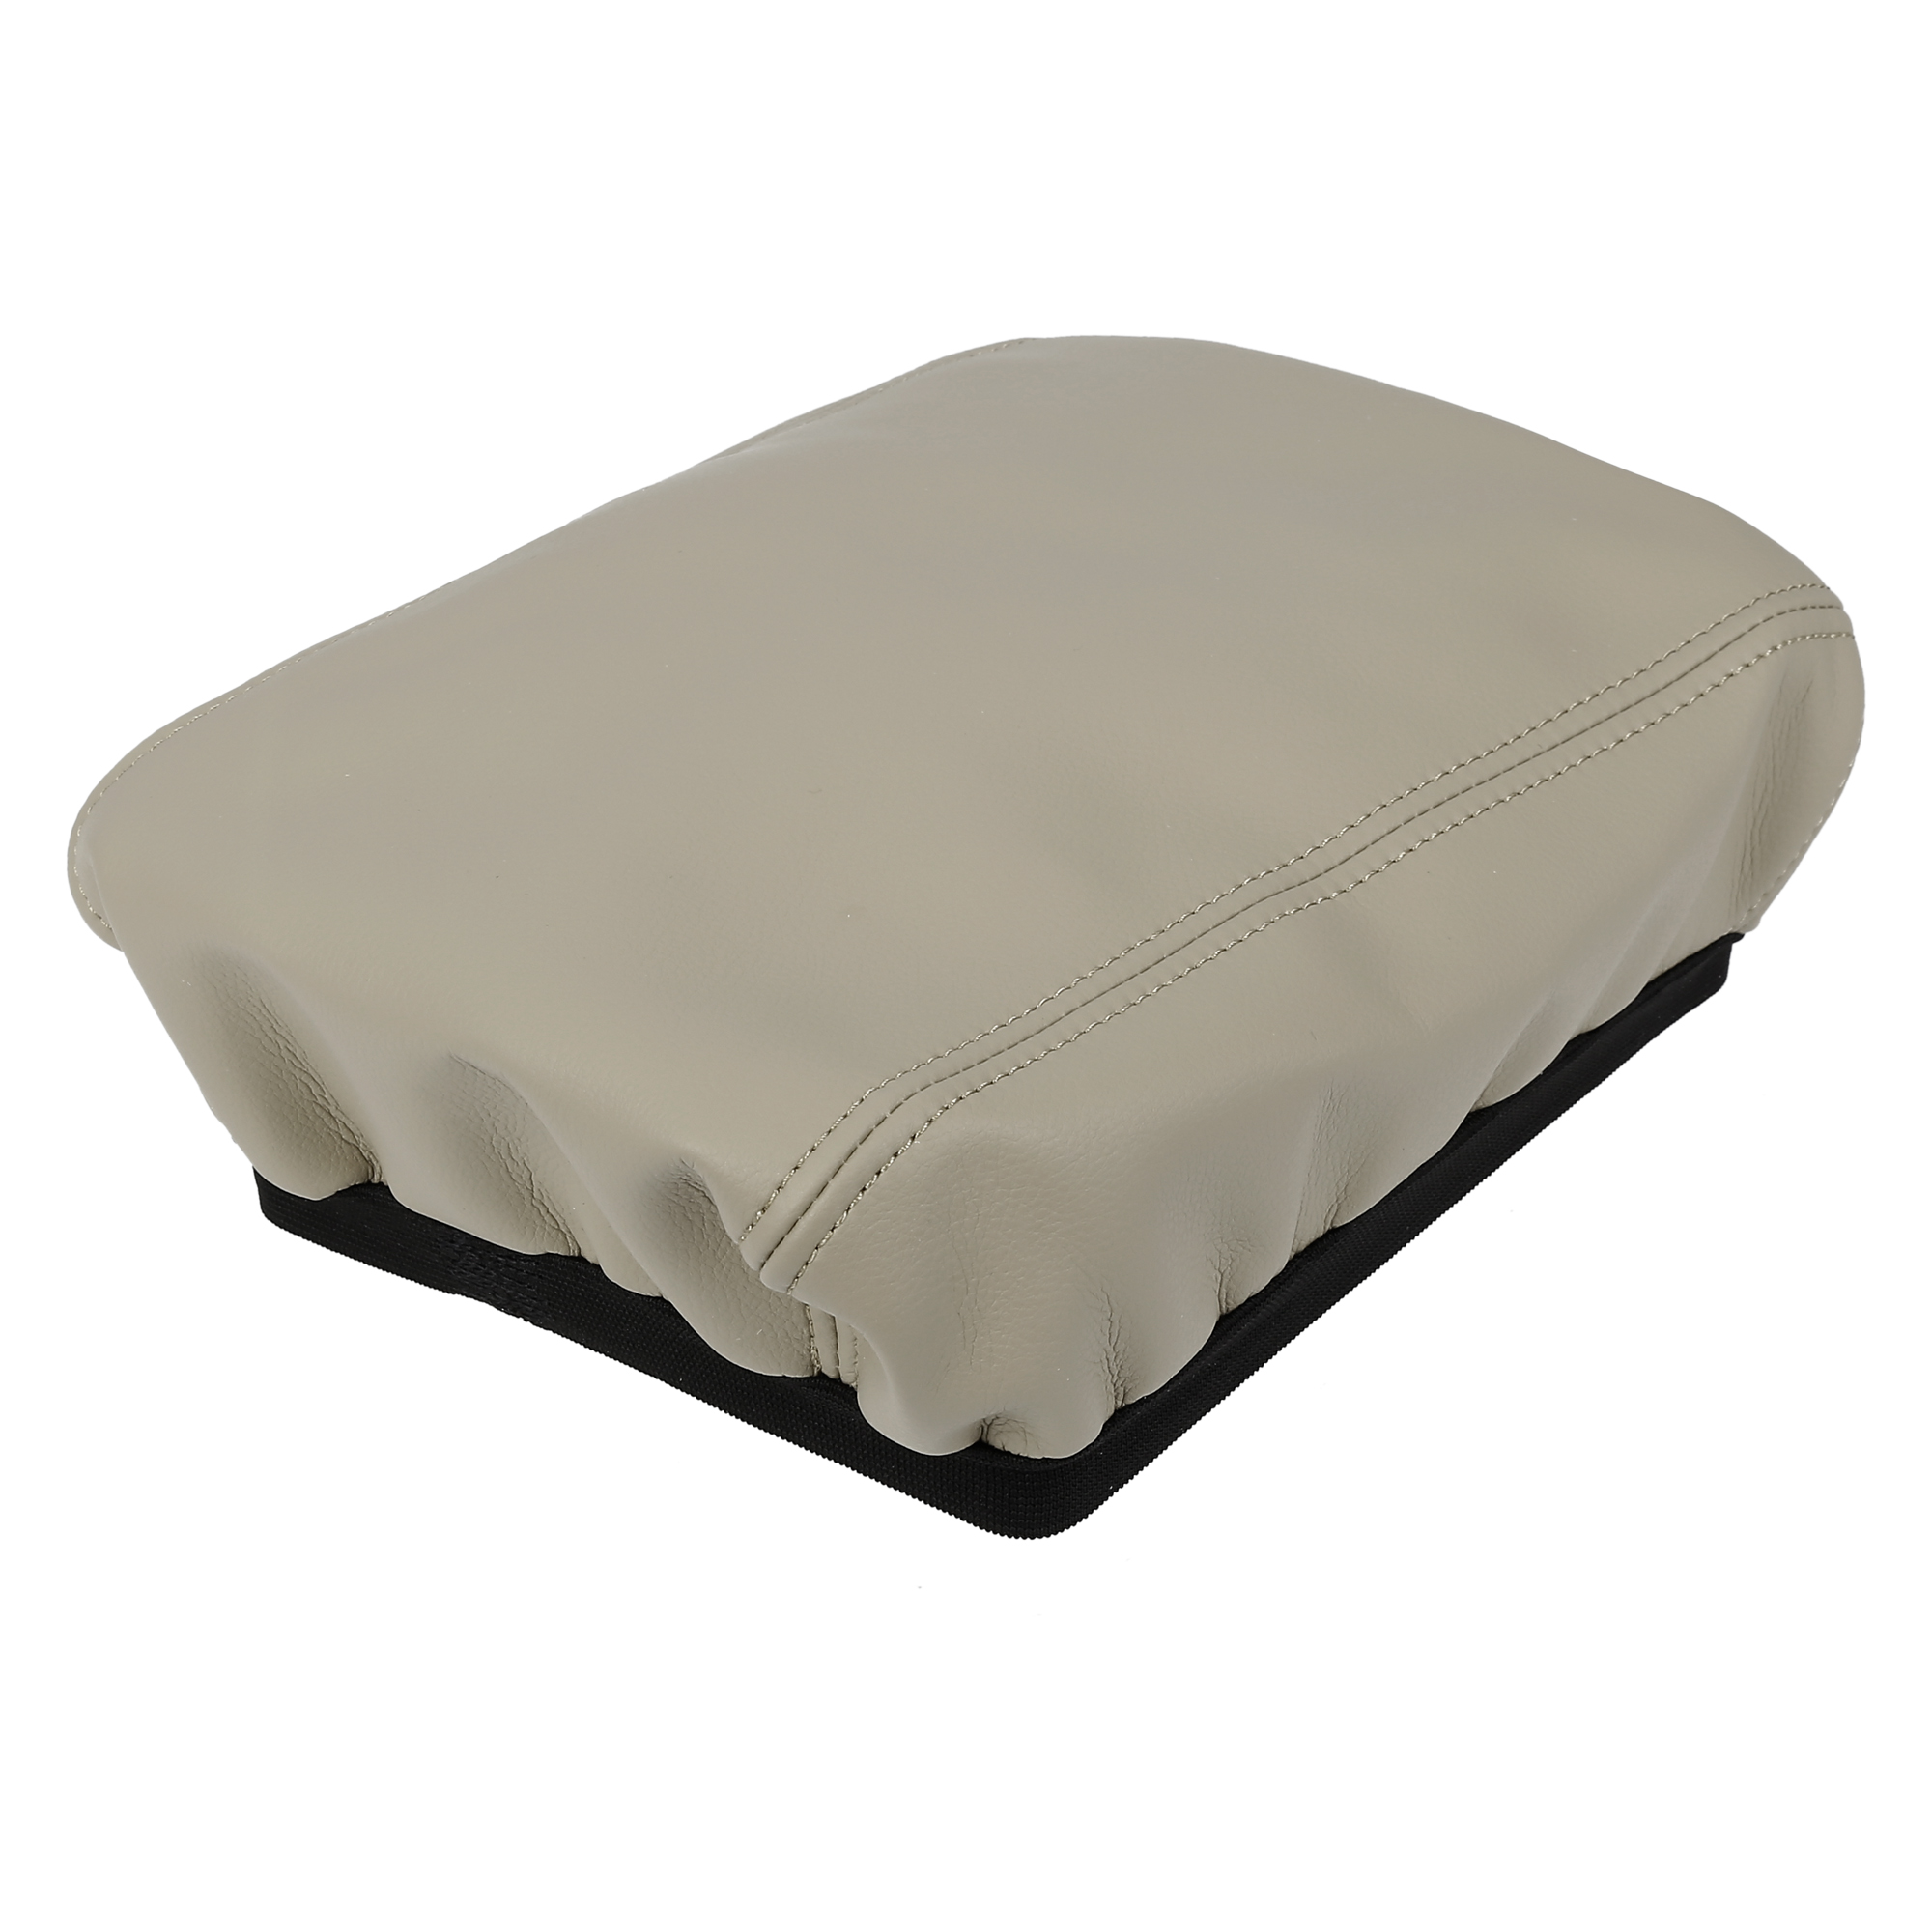 Car Center Console Armrest Pad Cover Protector Beige for Mazda CX5 2018-2020